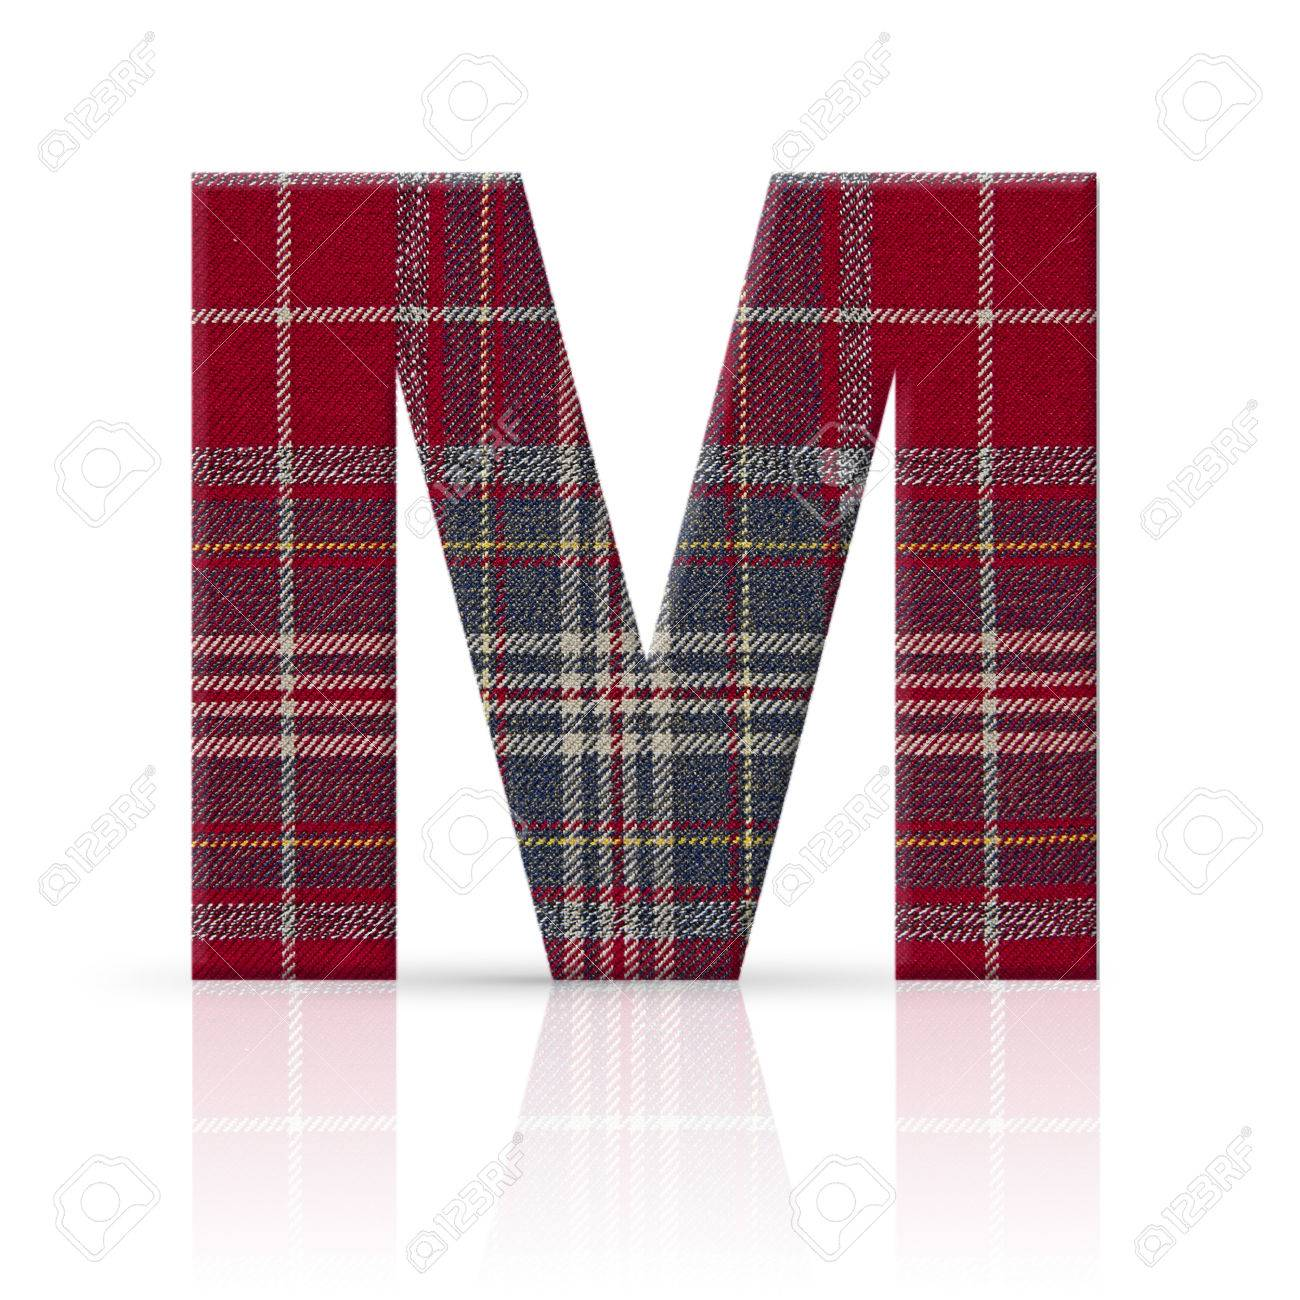 m letter plaid fabric texture Stock Photo - 22782243